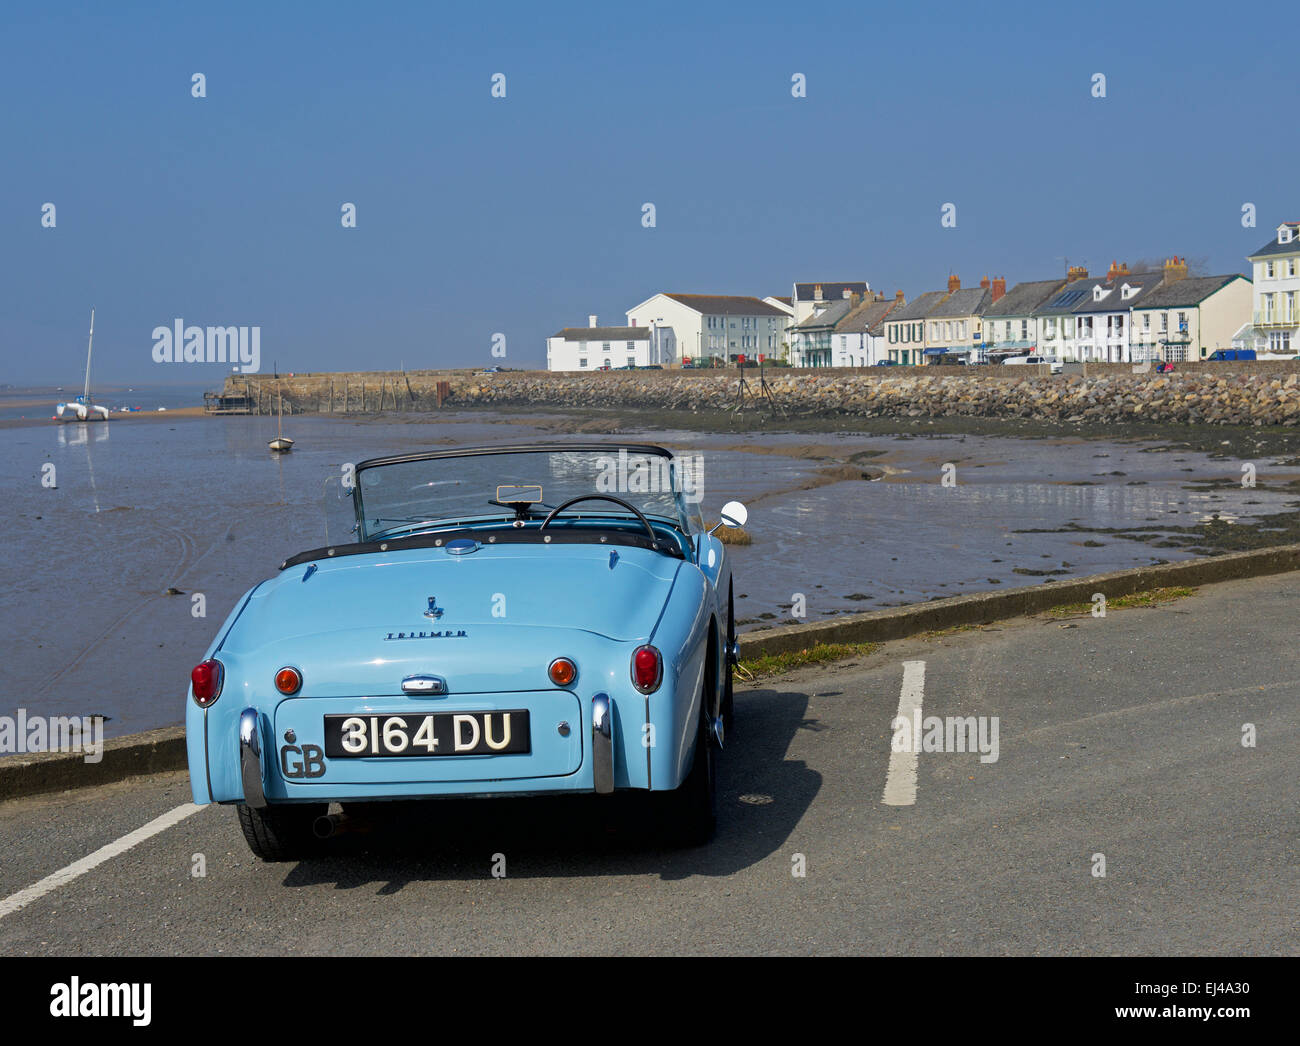 Triumph convertible sports car parked at Instow, Devon, England UK - Stock Image